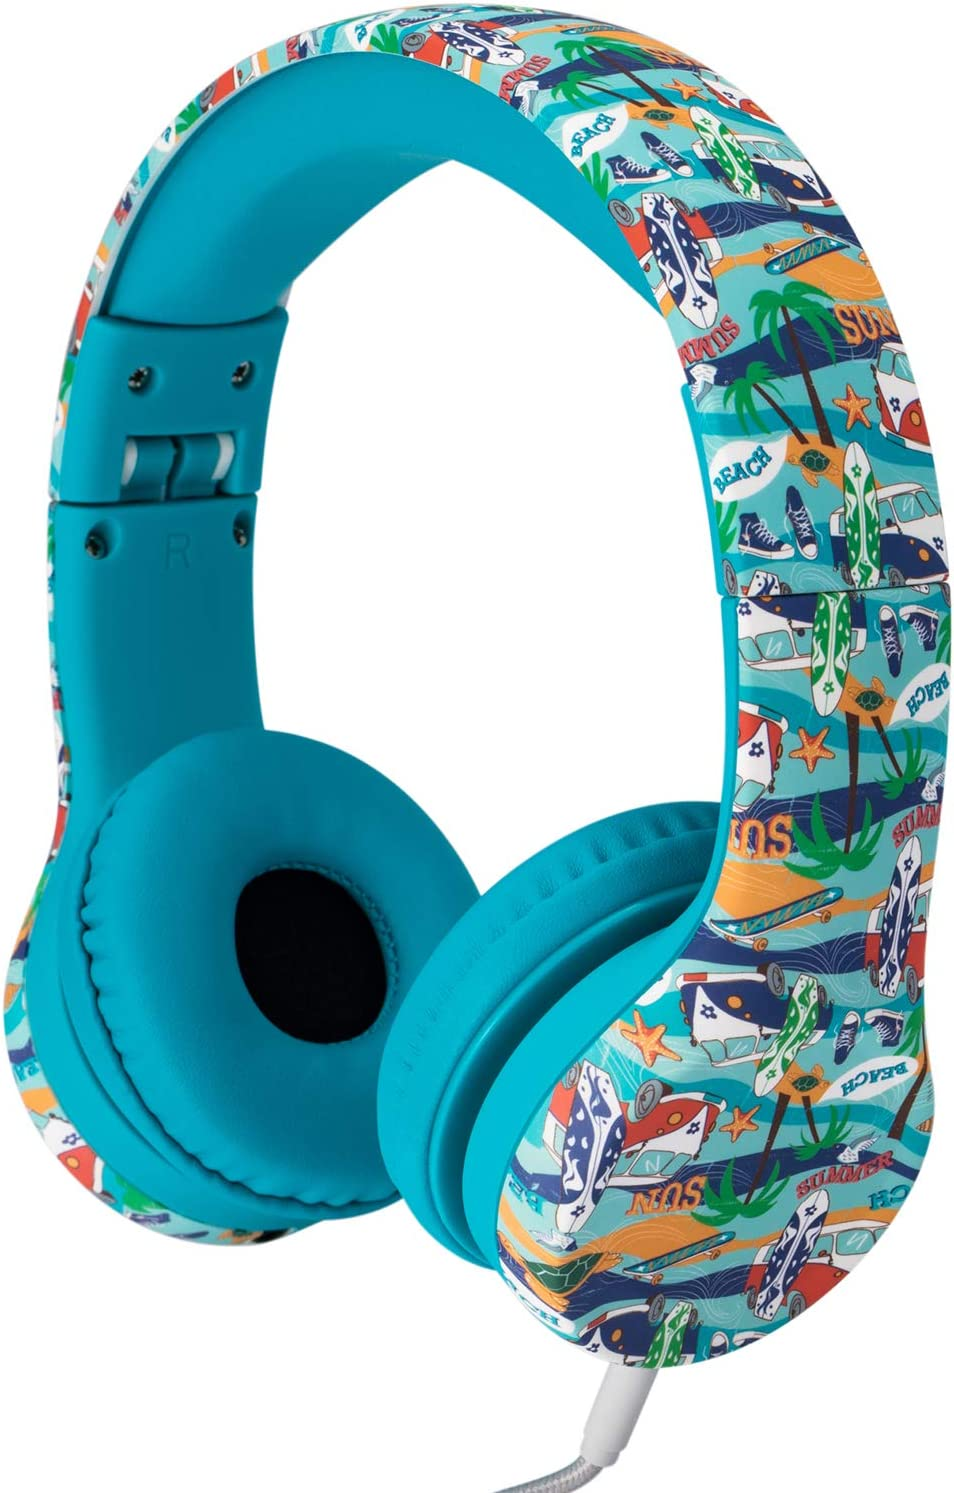 This is one of the best headphones for the tedders on the plane and also  for the used of kids and babies